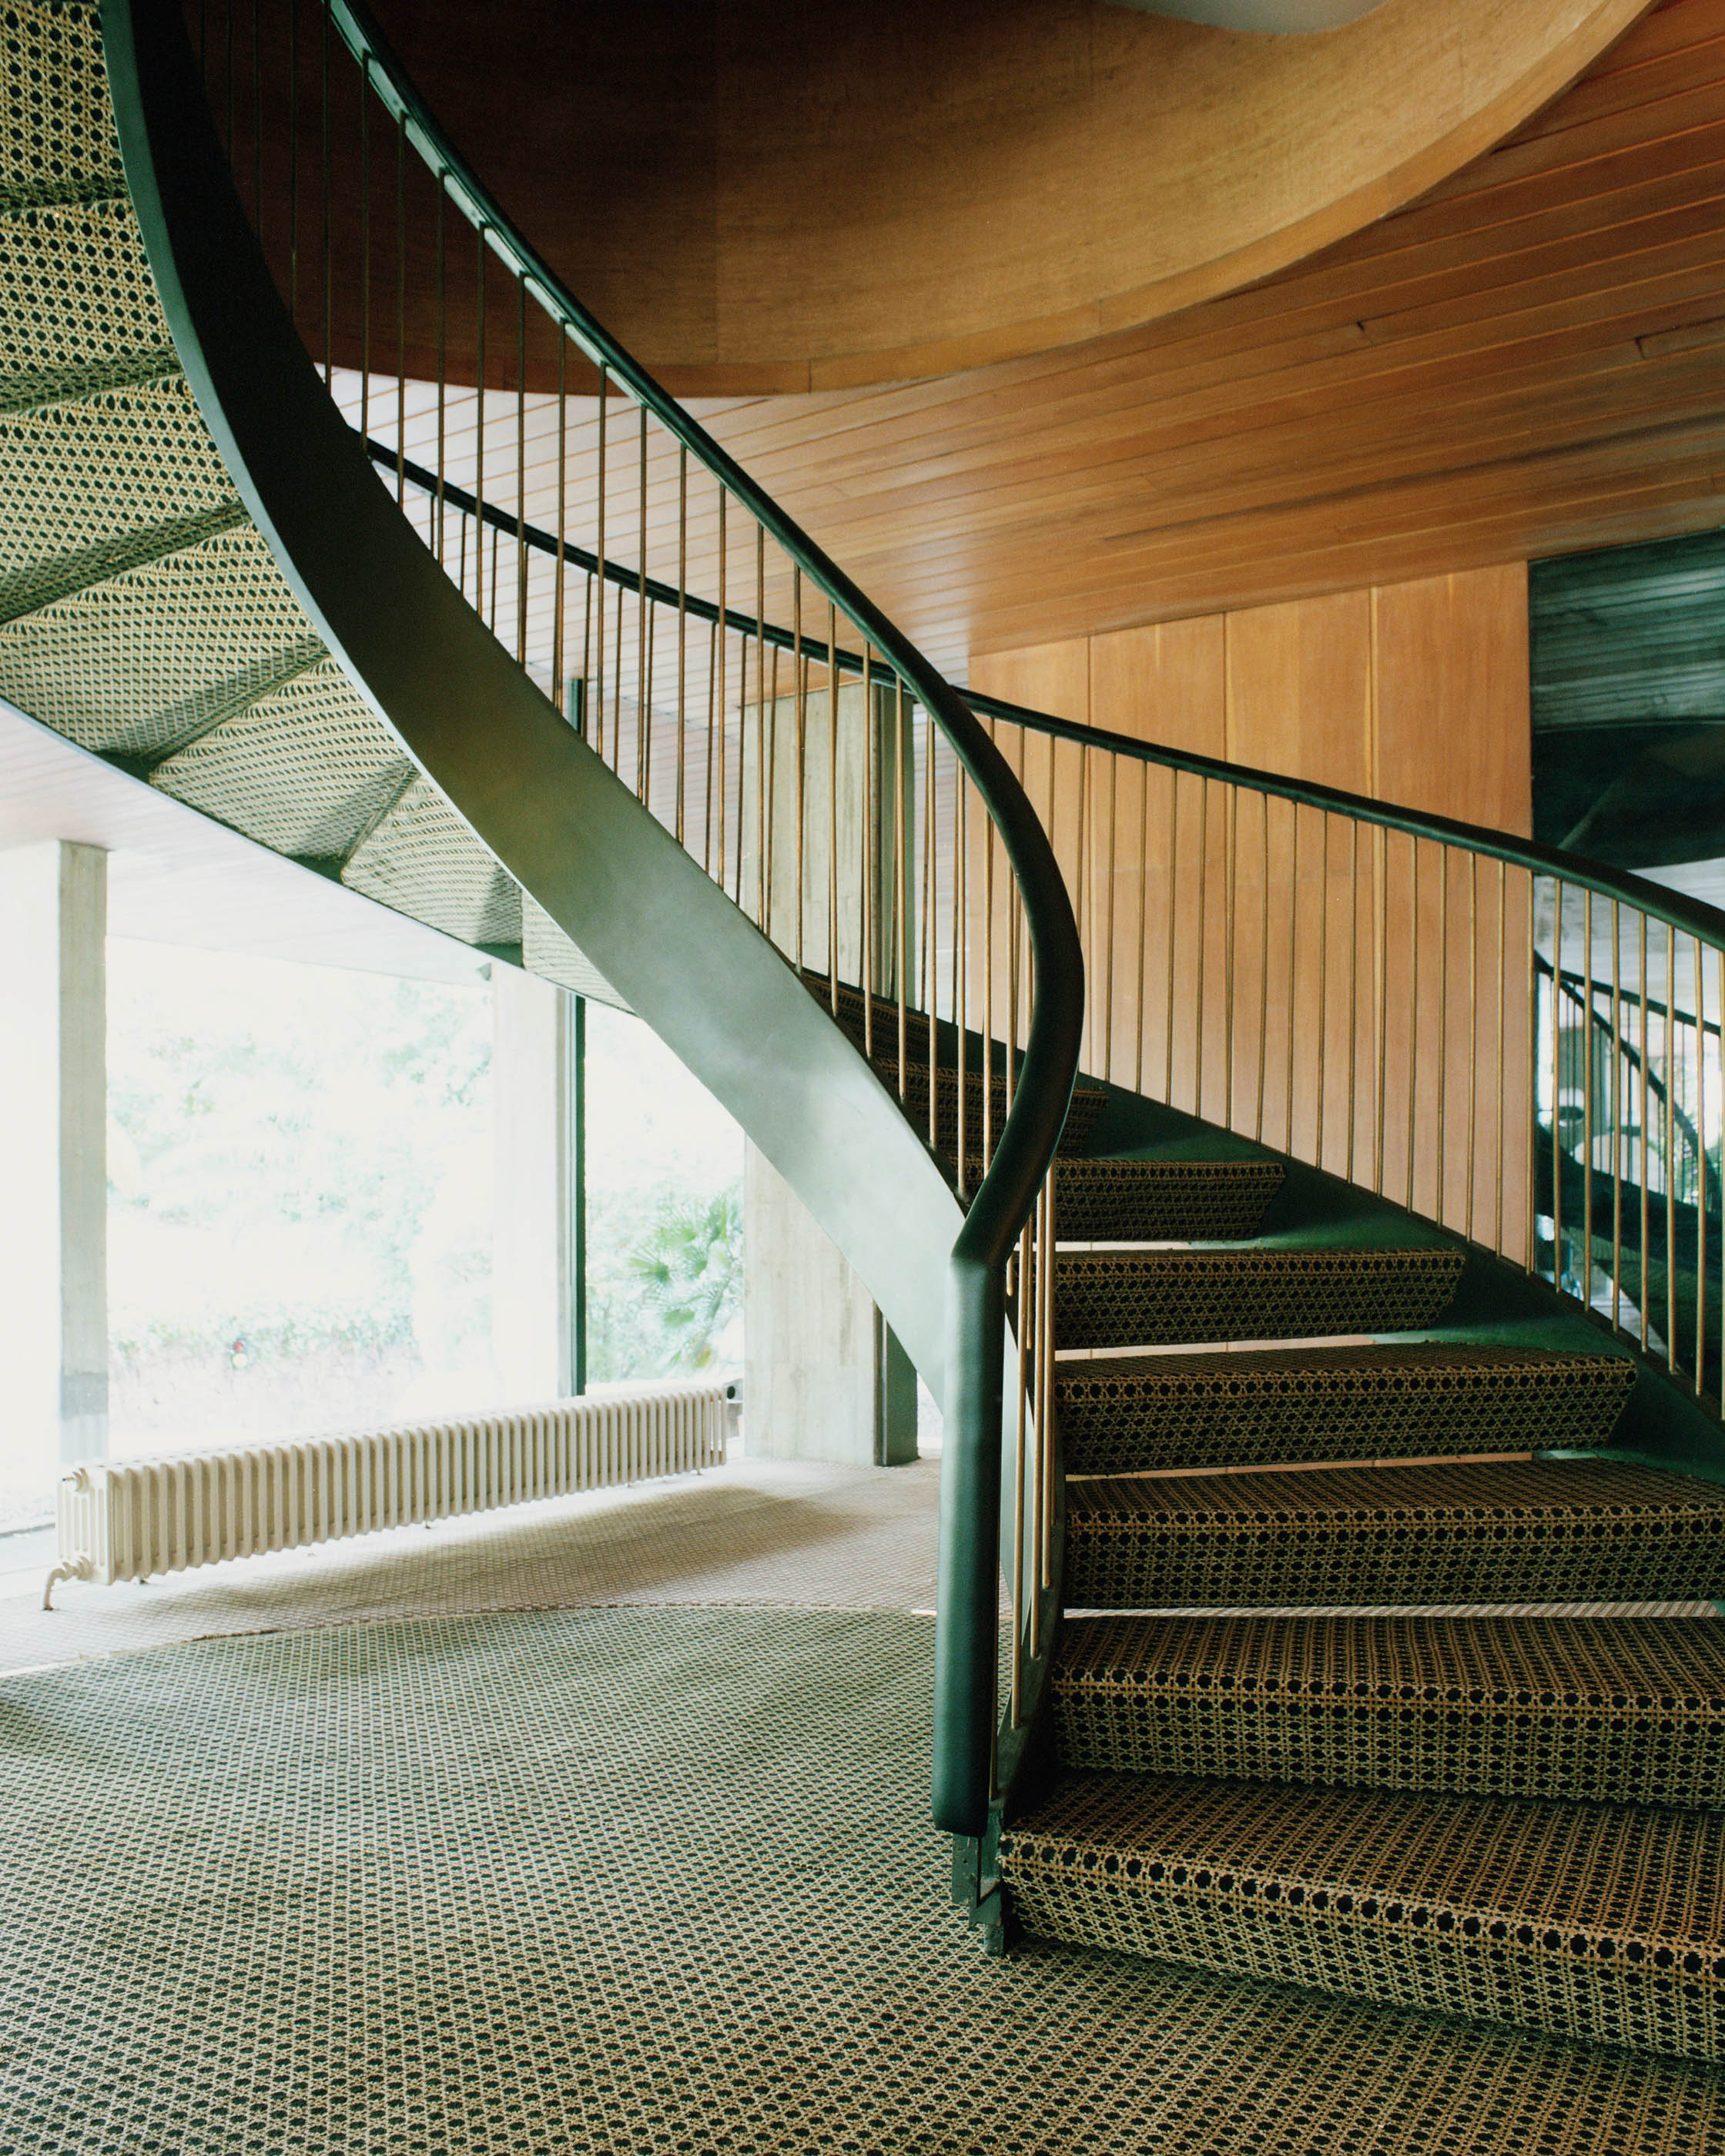 #barcelona #monocle #sarria #lobby #editorial #interiors #mitjans #stairs